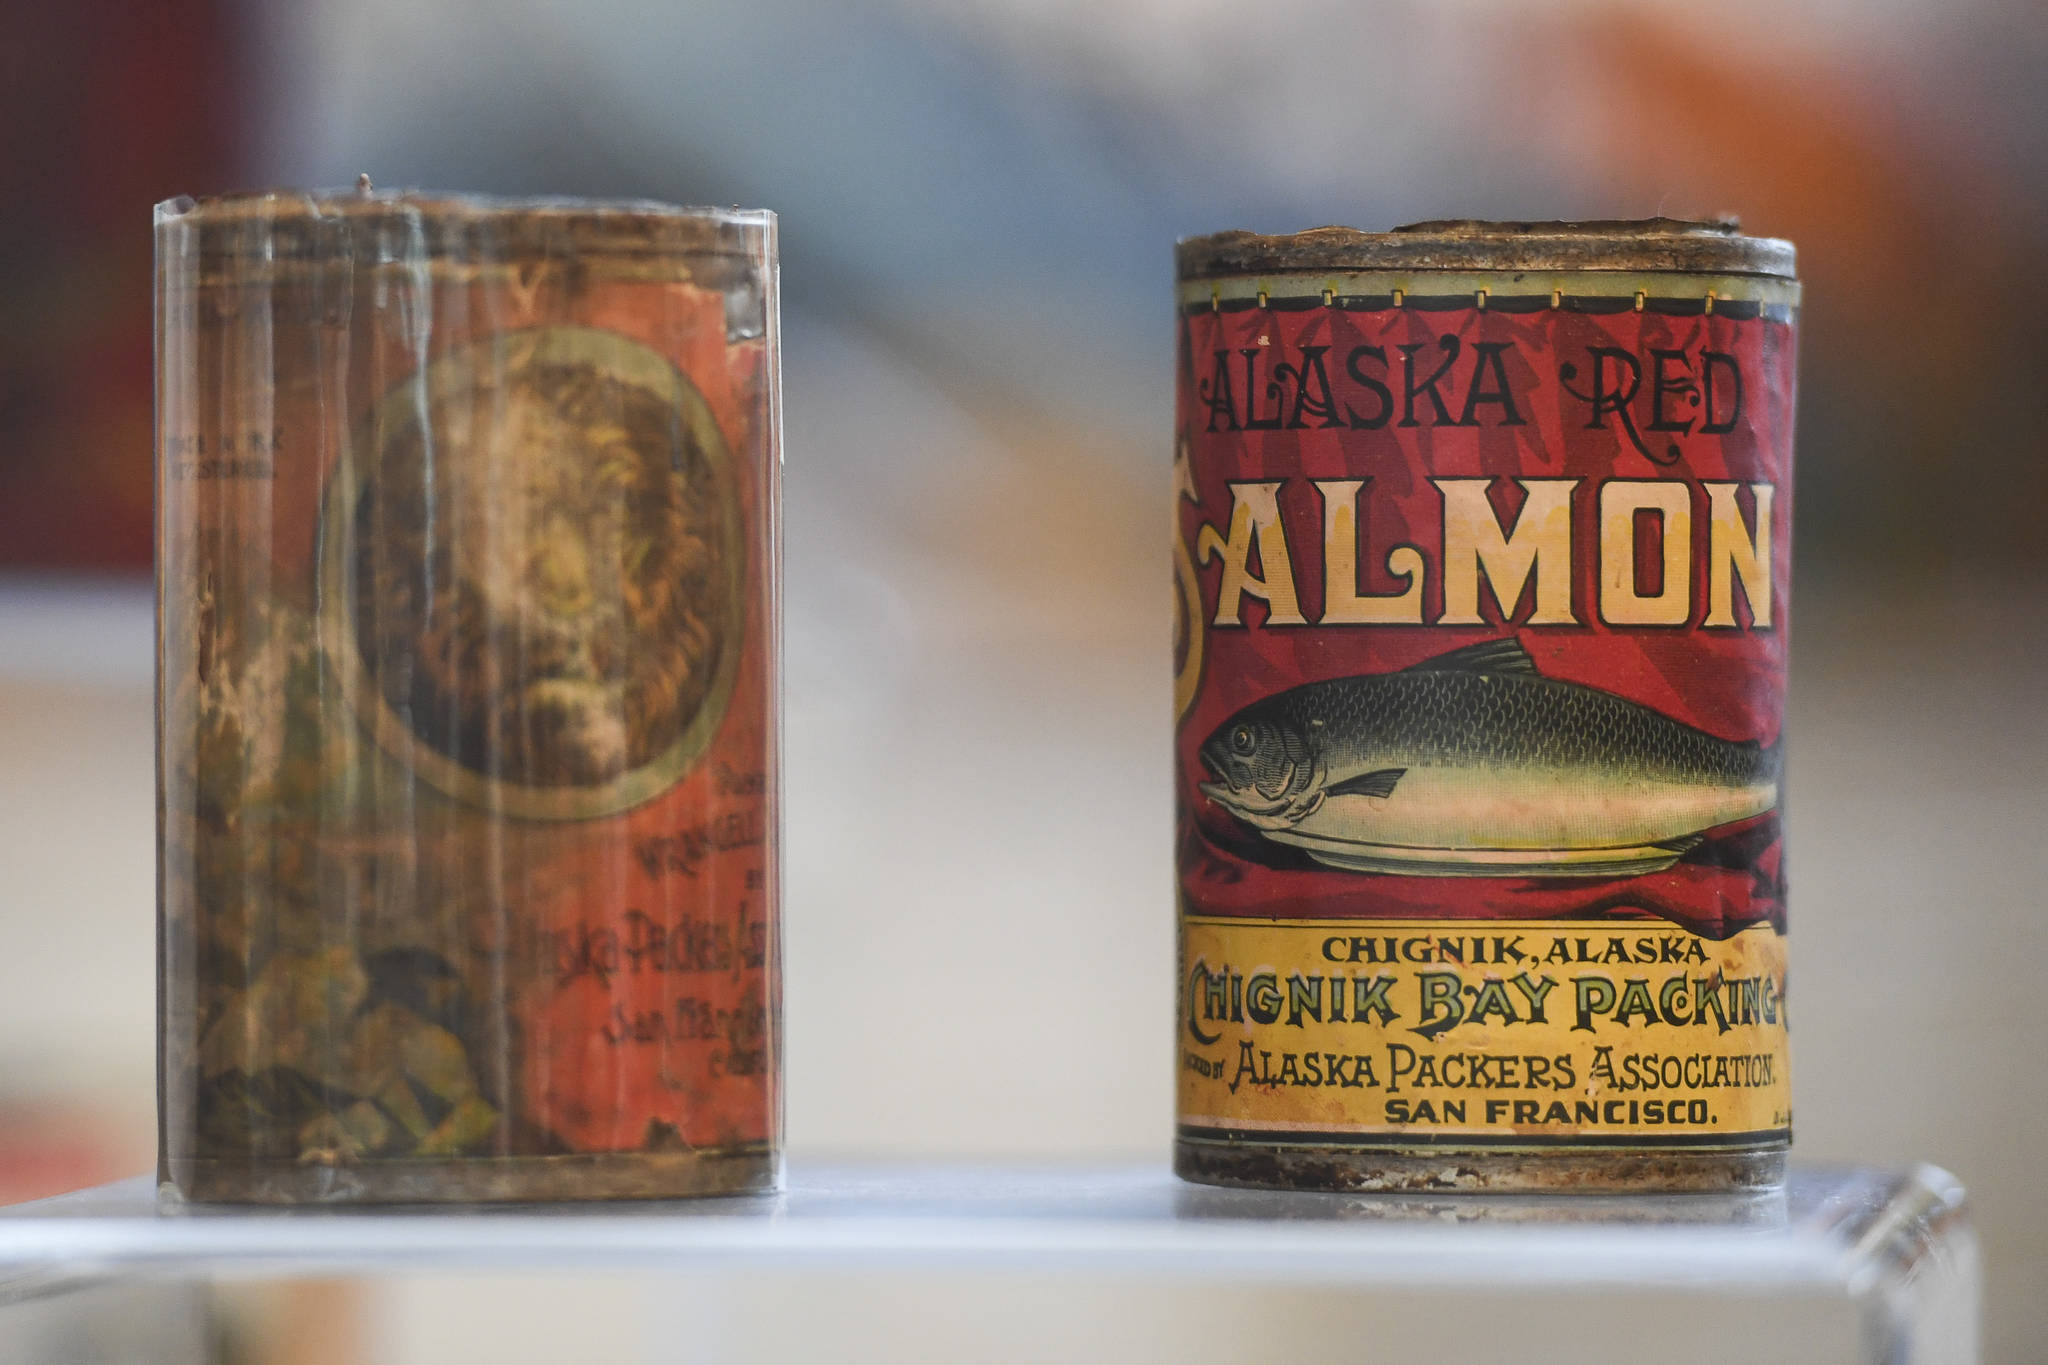 The Alaska State Library features historic salmon canneries with a collection from the Karen Hofstad at the Research Center for First Friday on Friday, June 7, 2019. (Michael Penn | Juneau Empire)